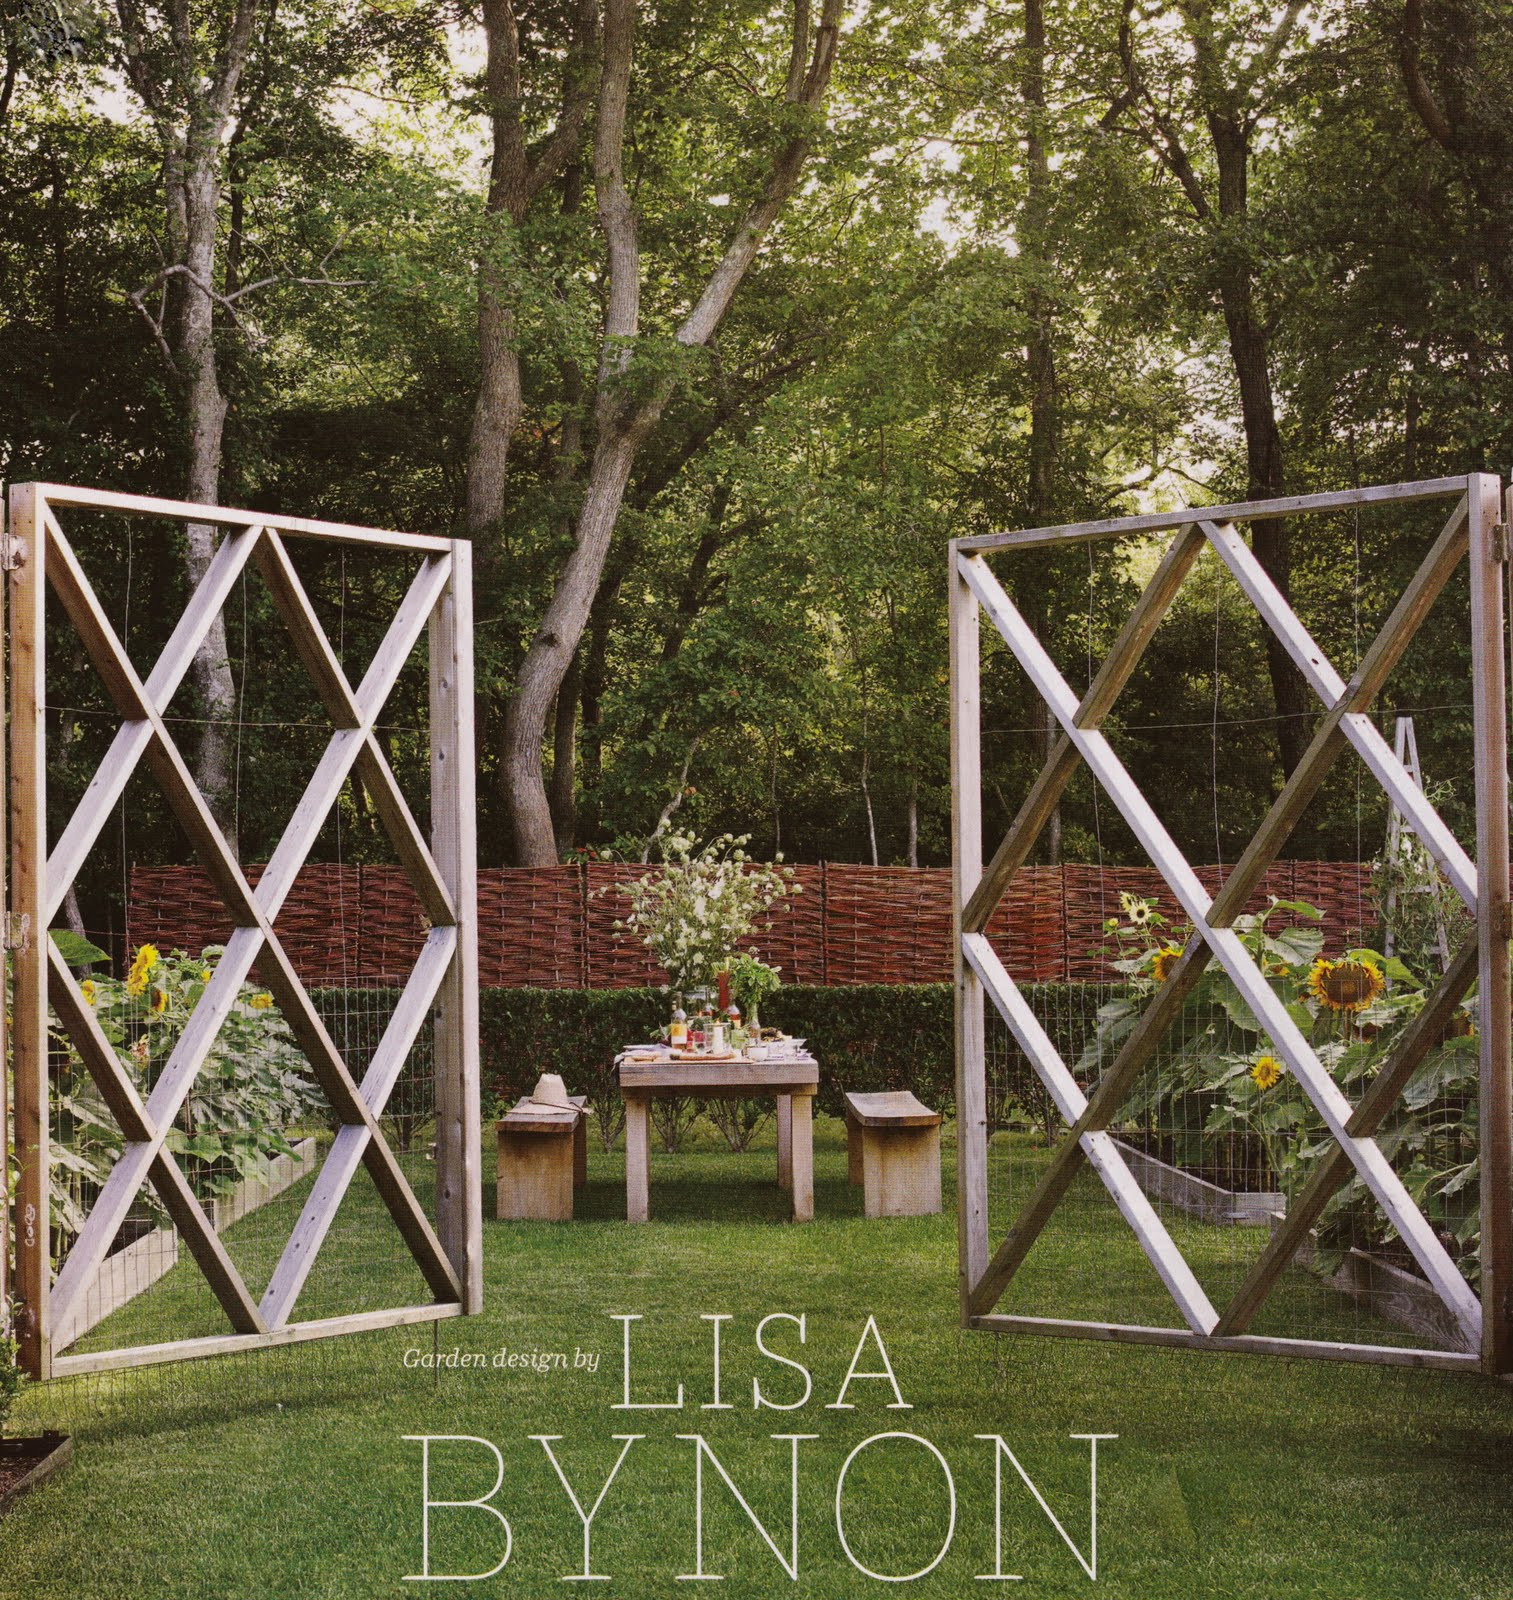 Northeast Locavore: Lisa Bynon\'s beautiful garden gates